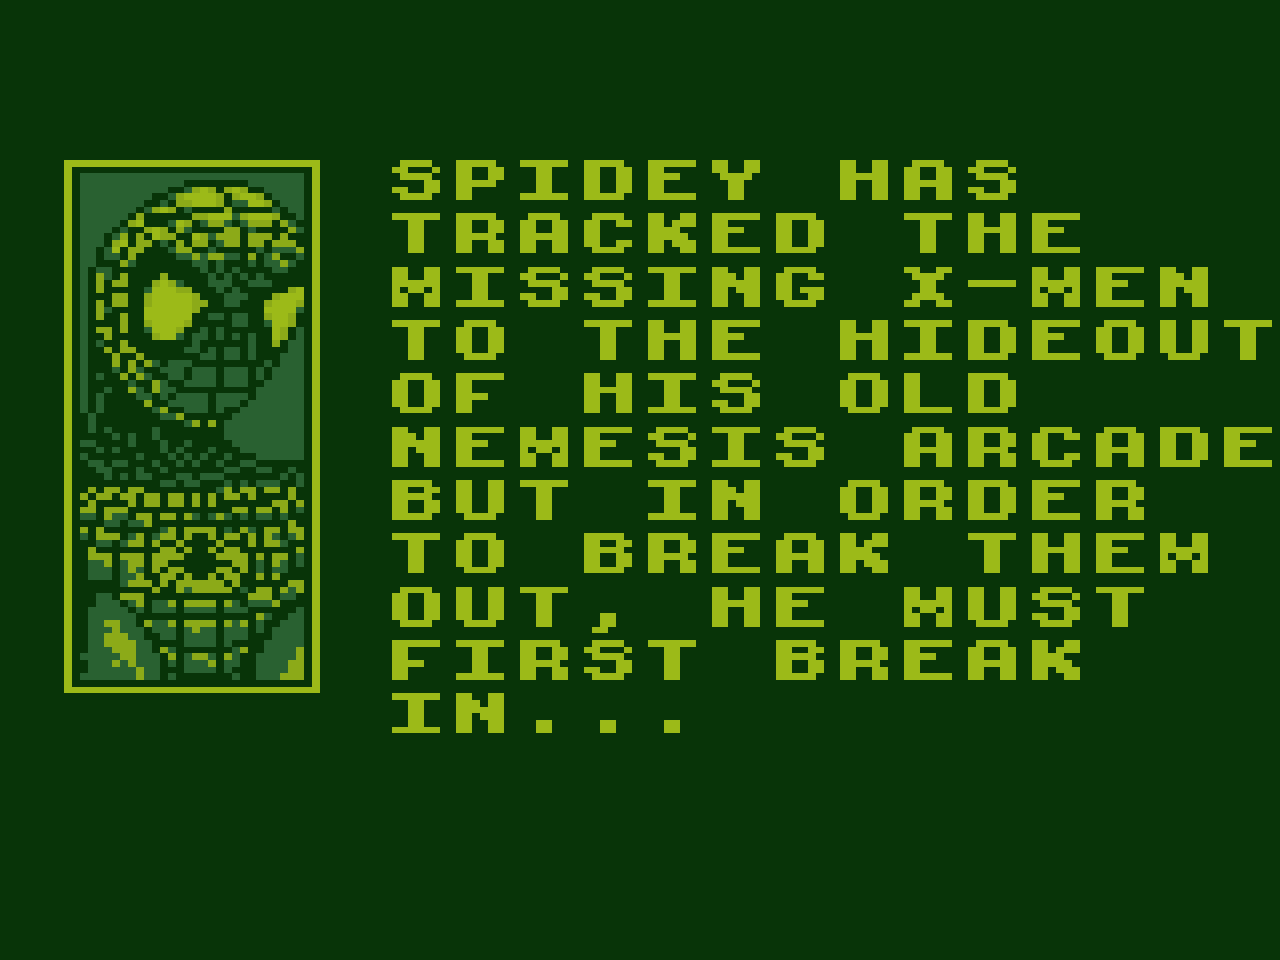 https://s3.eu-west-3.amazonaws.com/games.anthony-dessalles.com/Spider-Man and the X-Men in Arcade's Revenge GB 2020 - Screenshots/Spider-Man and the X-Men in Arcade's Revenge-201113-173650.png